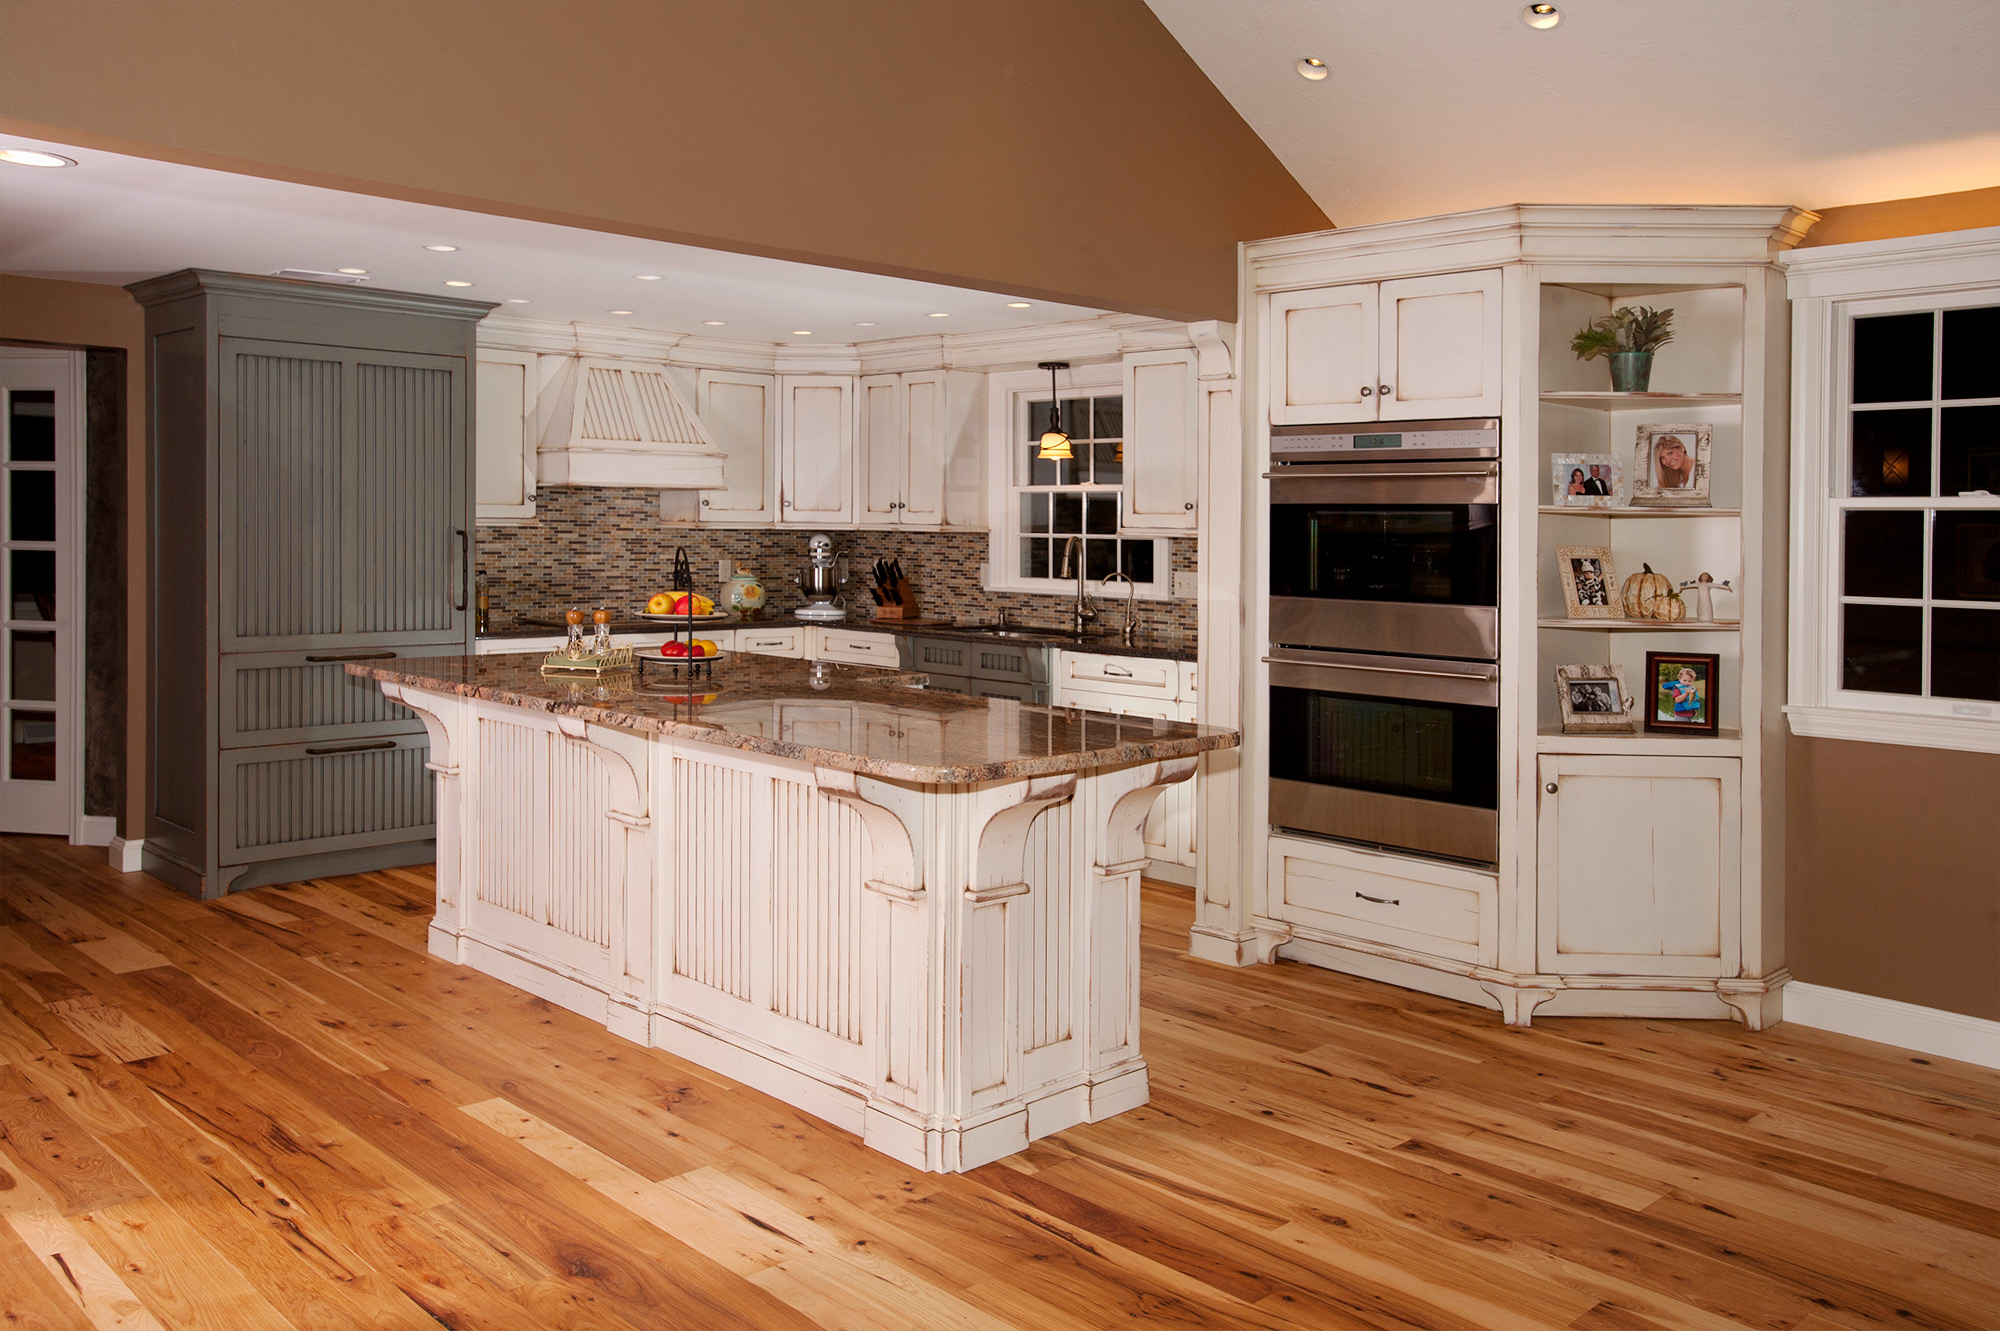 Faux Kitchen Cabinet Doors Distressed Kitchen With Island - Custom Cabinetry By Ken Leech